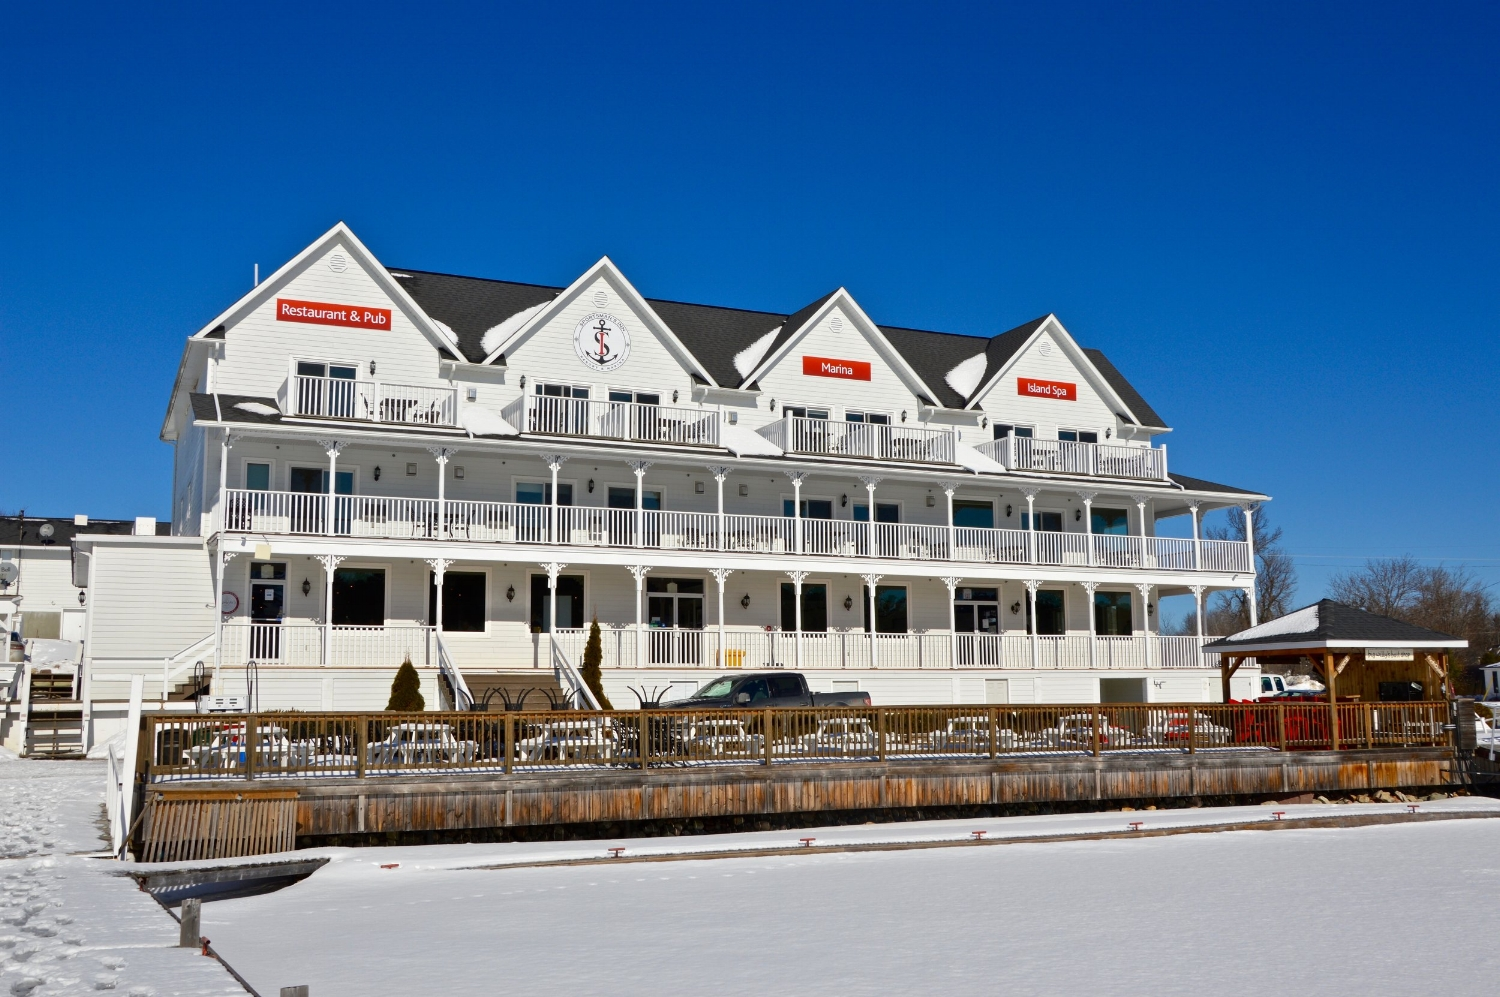 The Sportsman's Inn in Killarney, Ontario is a top choice when thinking about Killarney, Ontario hotels.